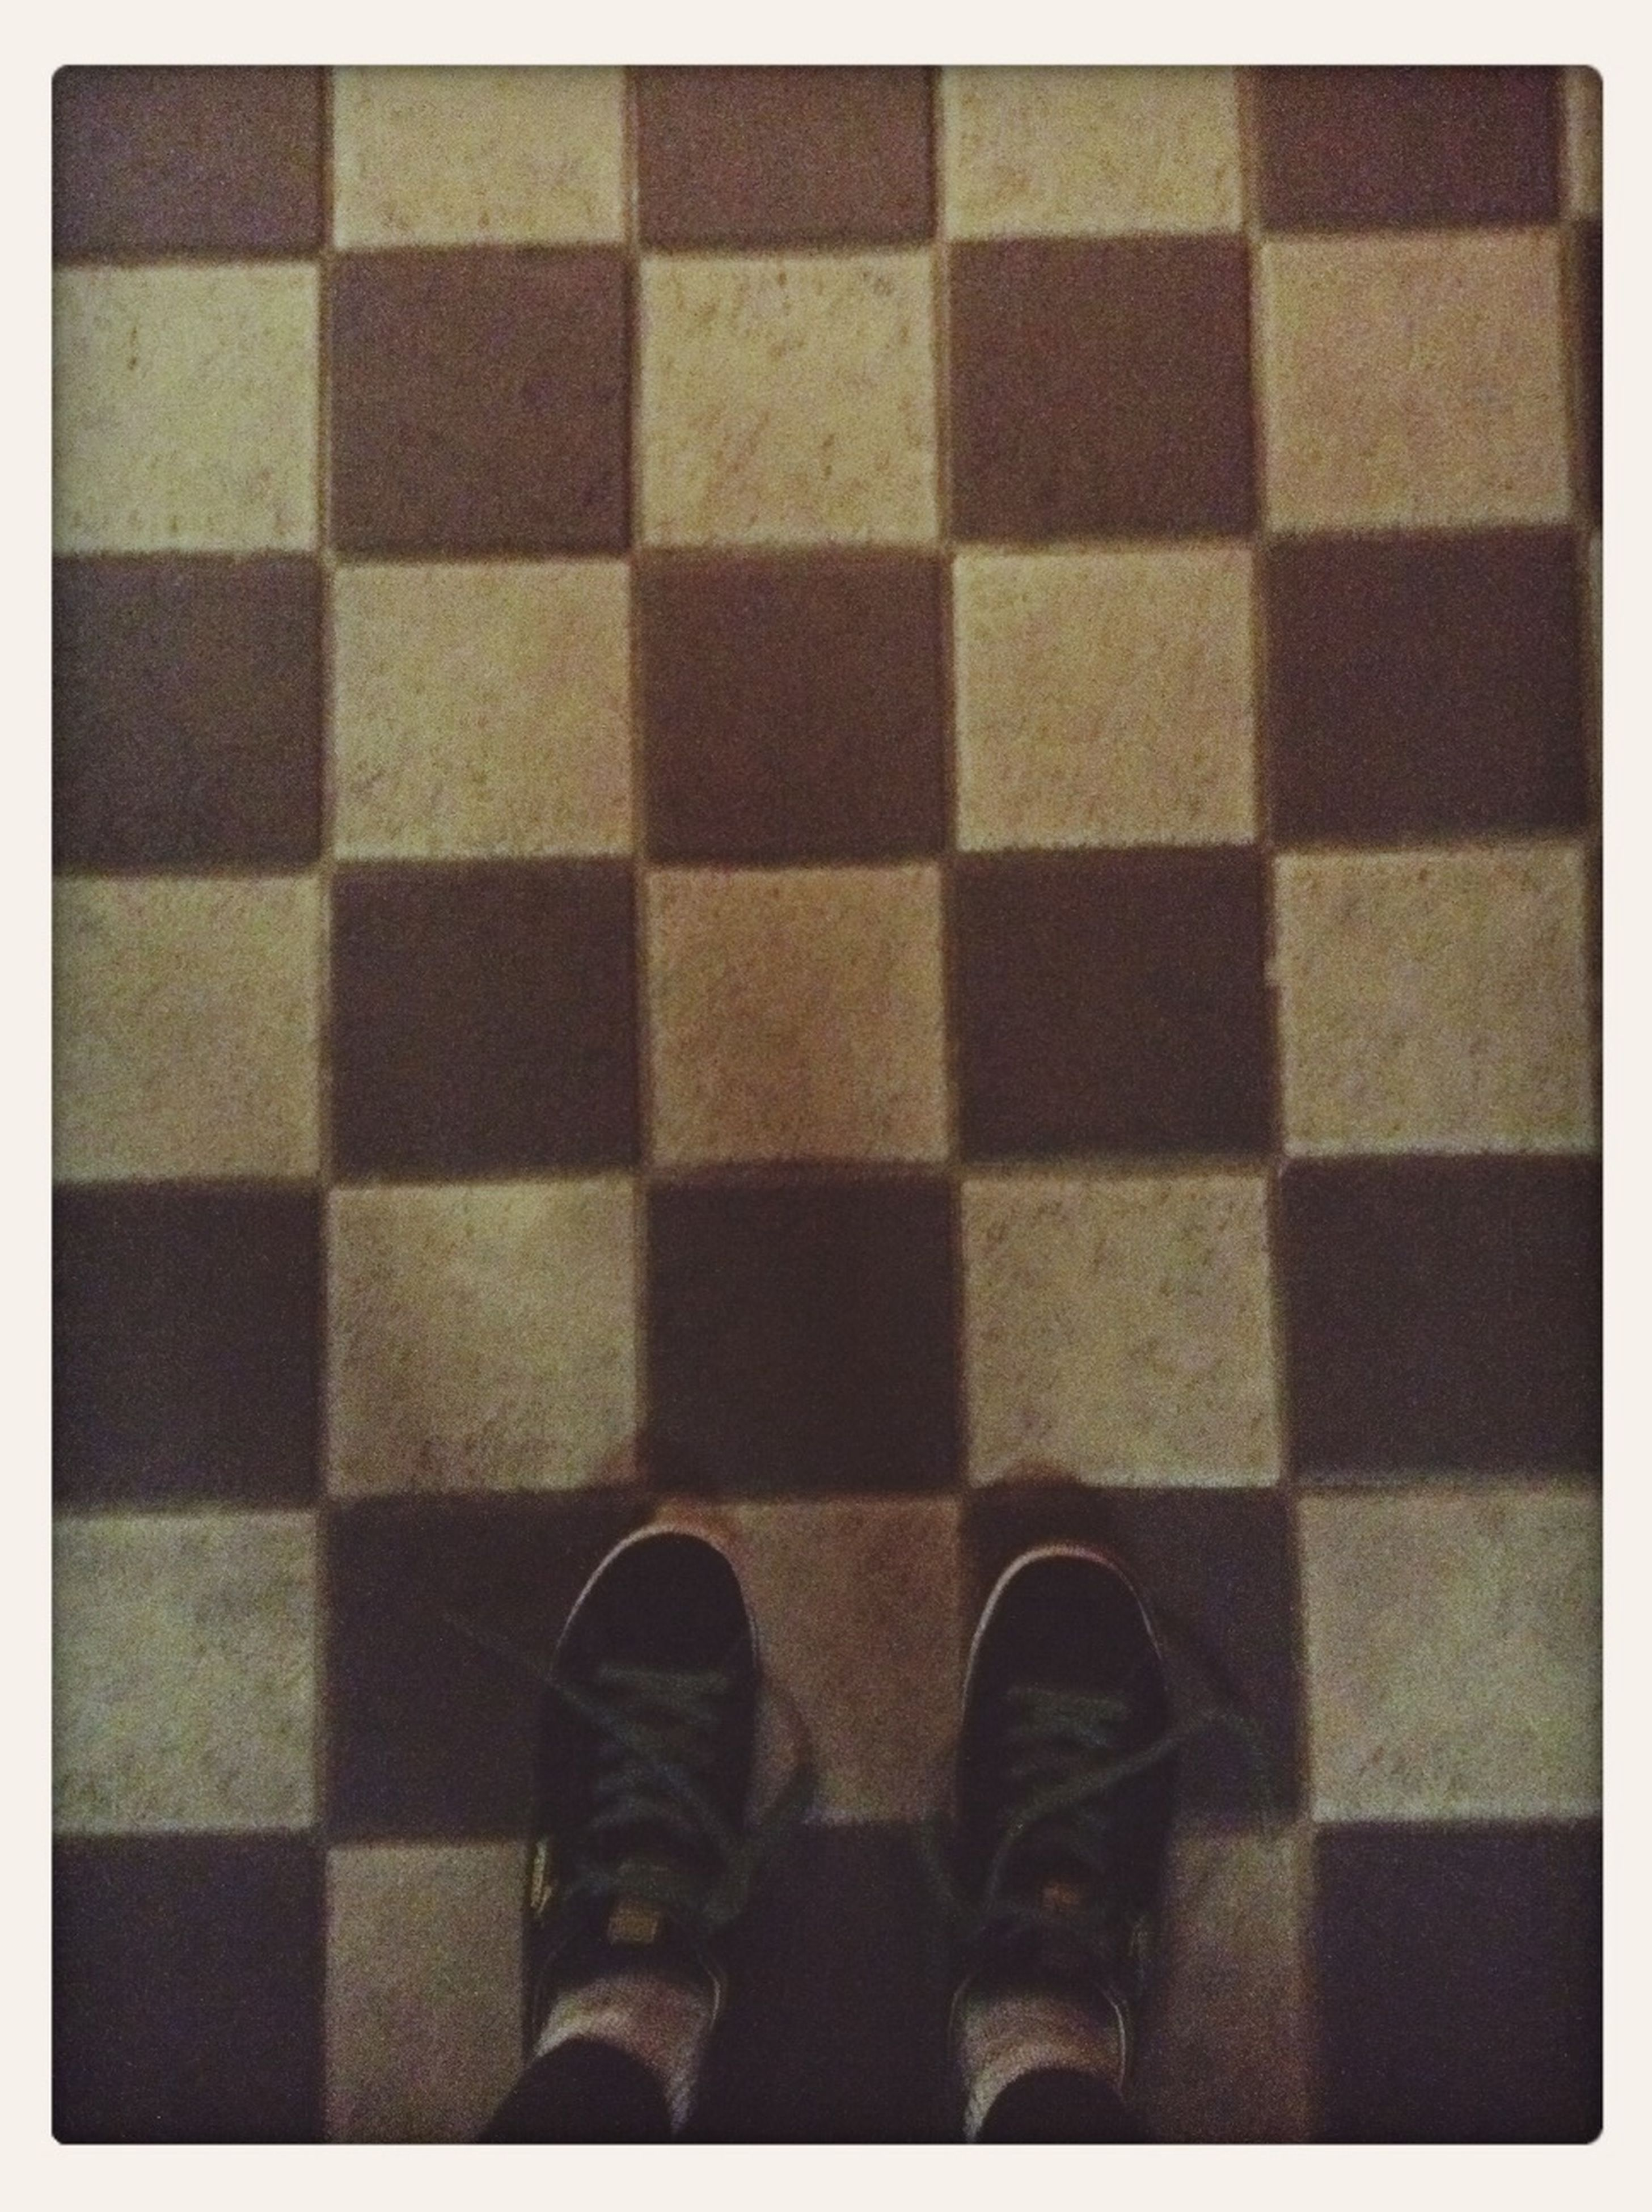 indoors, lifestyles, men, transfer print, auto post production filter, person, tiled floor, pattern, low section, standing, leisure activity, flooring, full frame, wall - building feature, unrecognizable person, tile